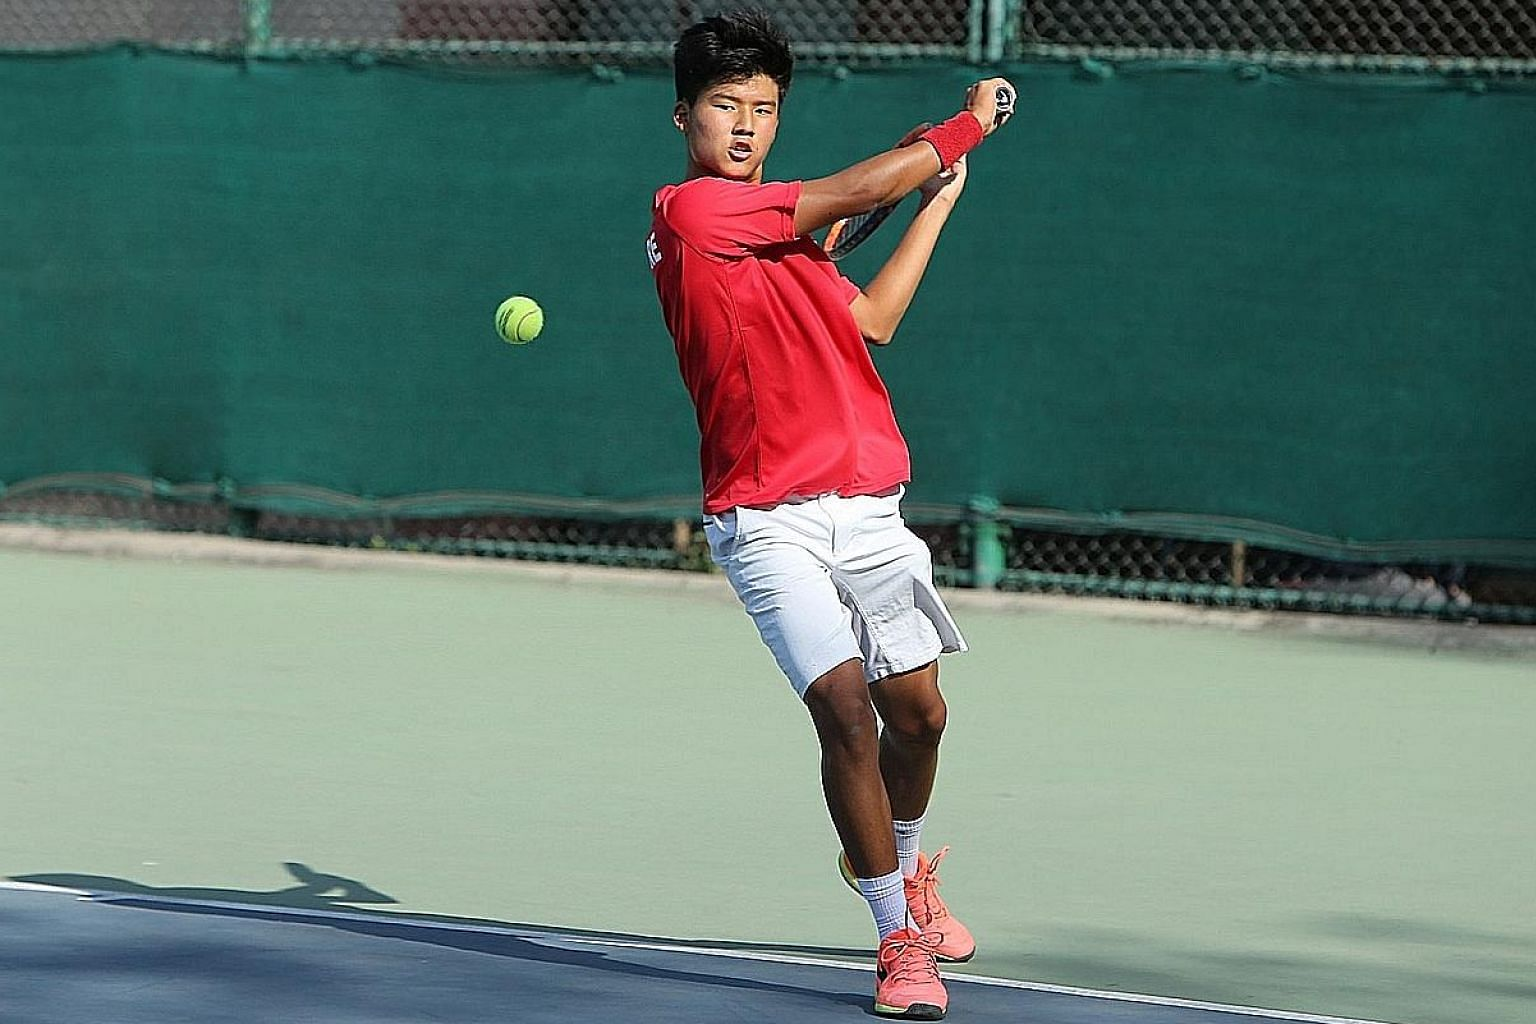 Ethan Lye playing for Singapore at the Asia Oceania Junior Davis Cup under-16 tournament in India in March. Yesterday, he beat top seed Campbell Salmon for the New South Wales Junior International crown.